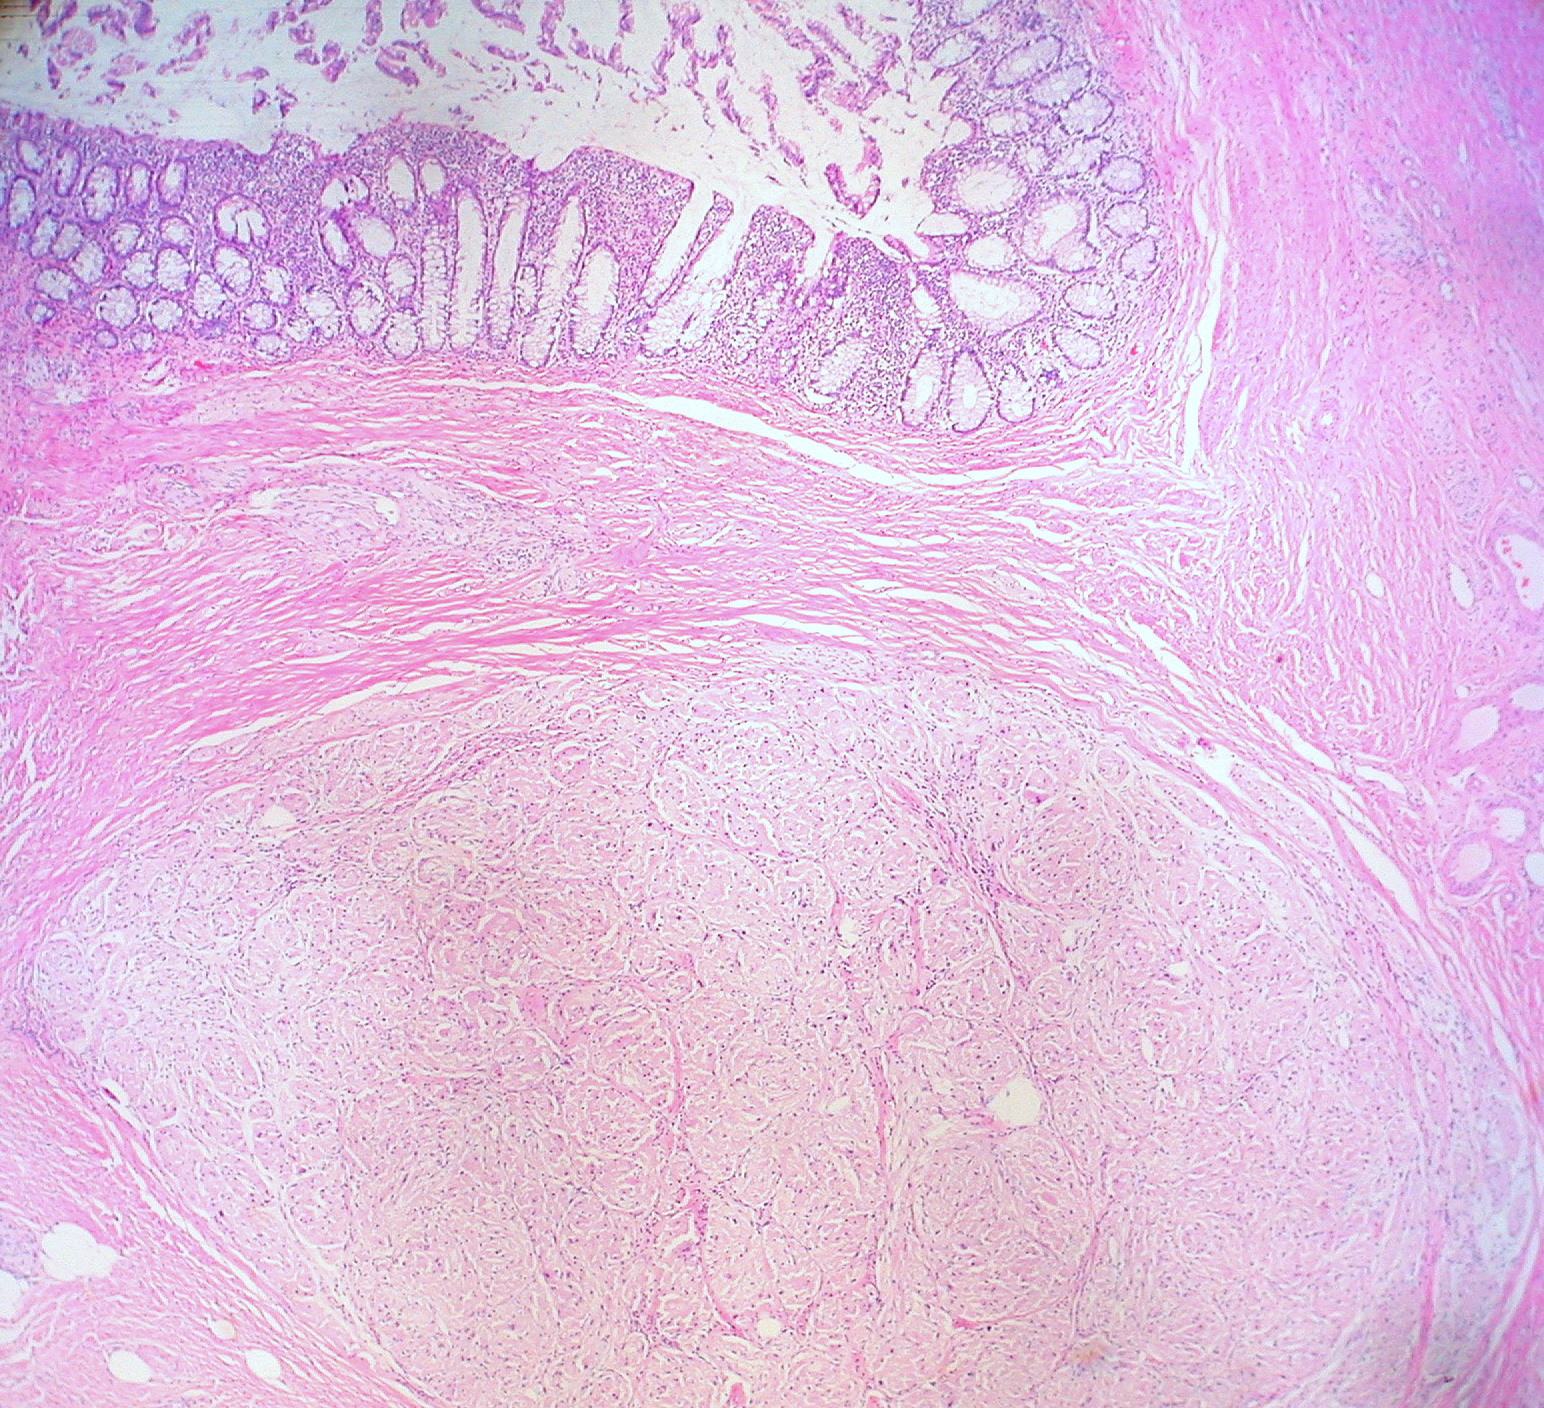 You have anus cell granular tumor think